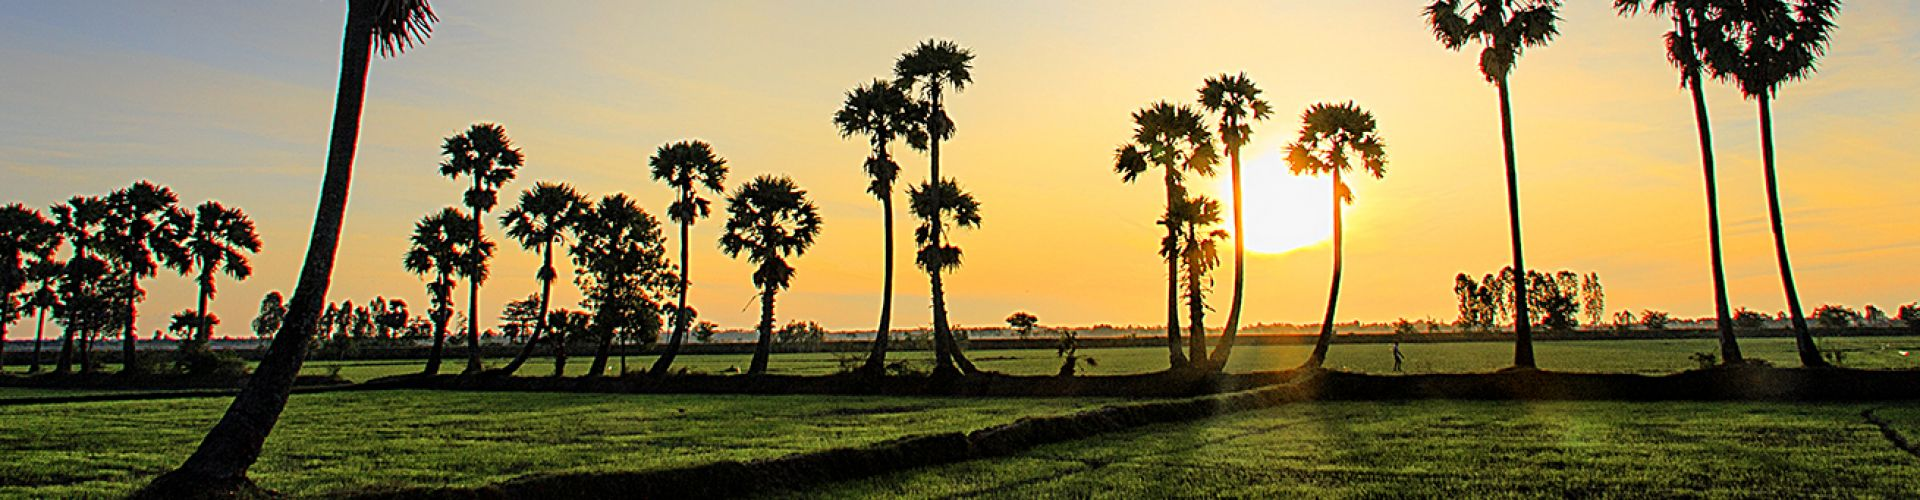 Destinations in Mekong Delta - Southern Region